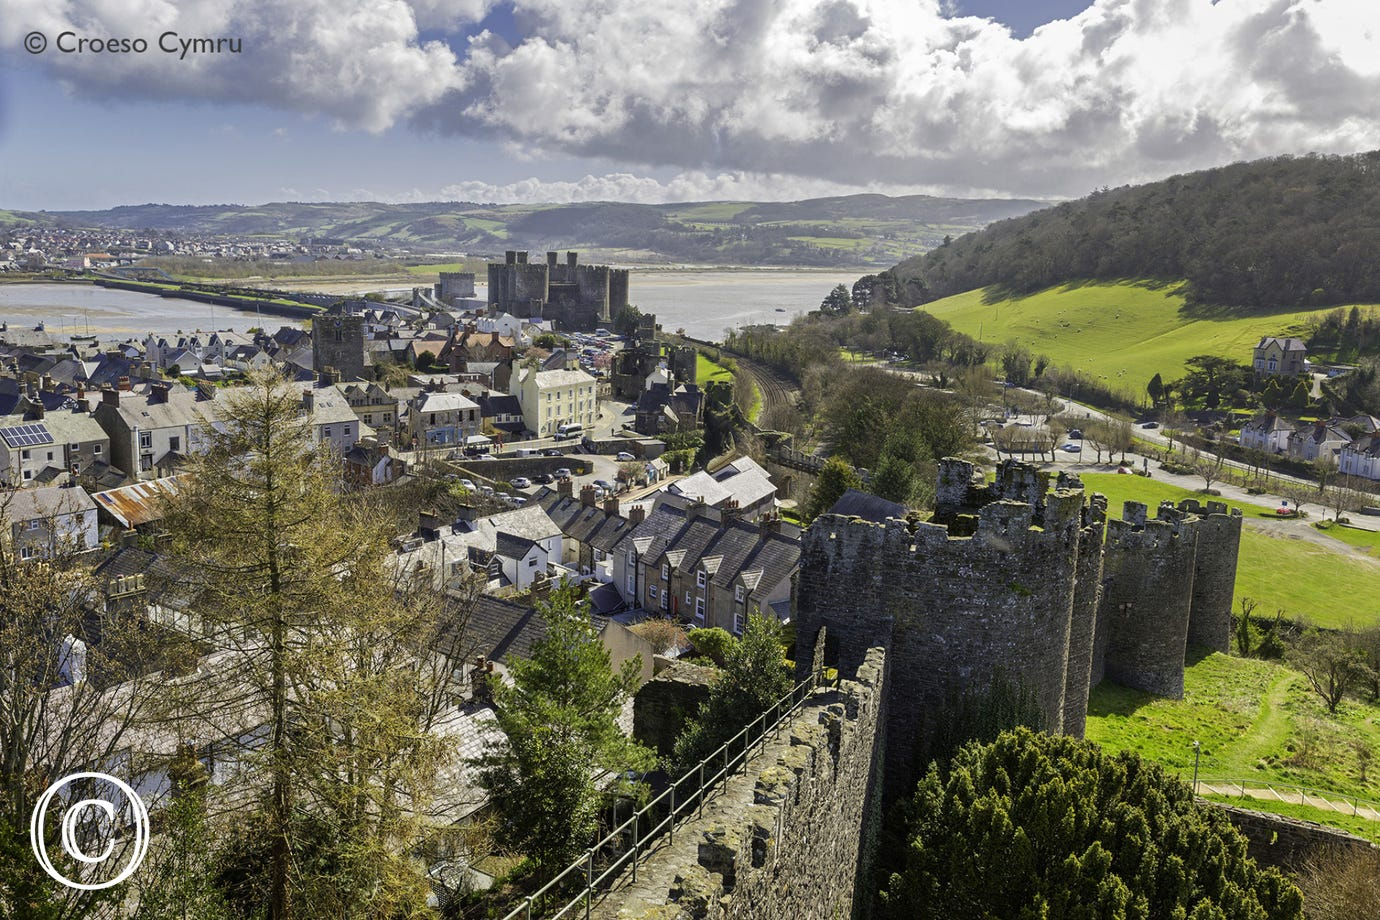 The walled town of Conwy